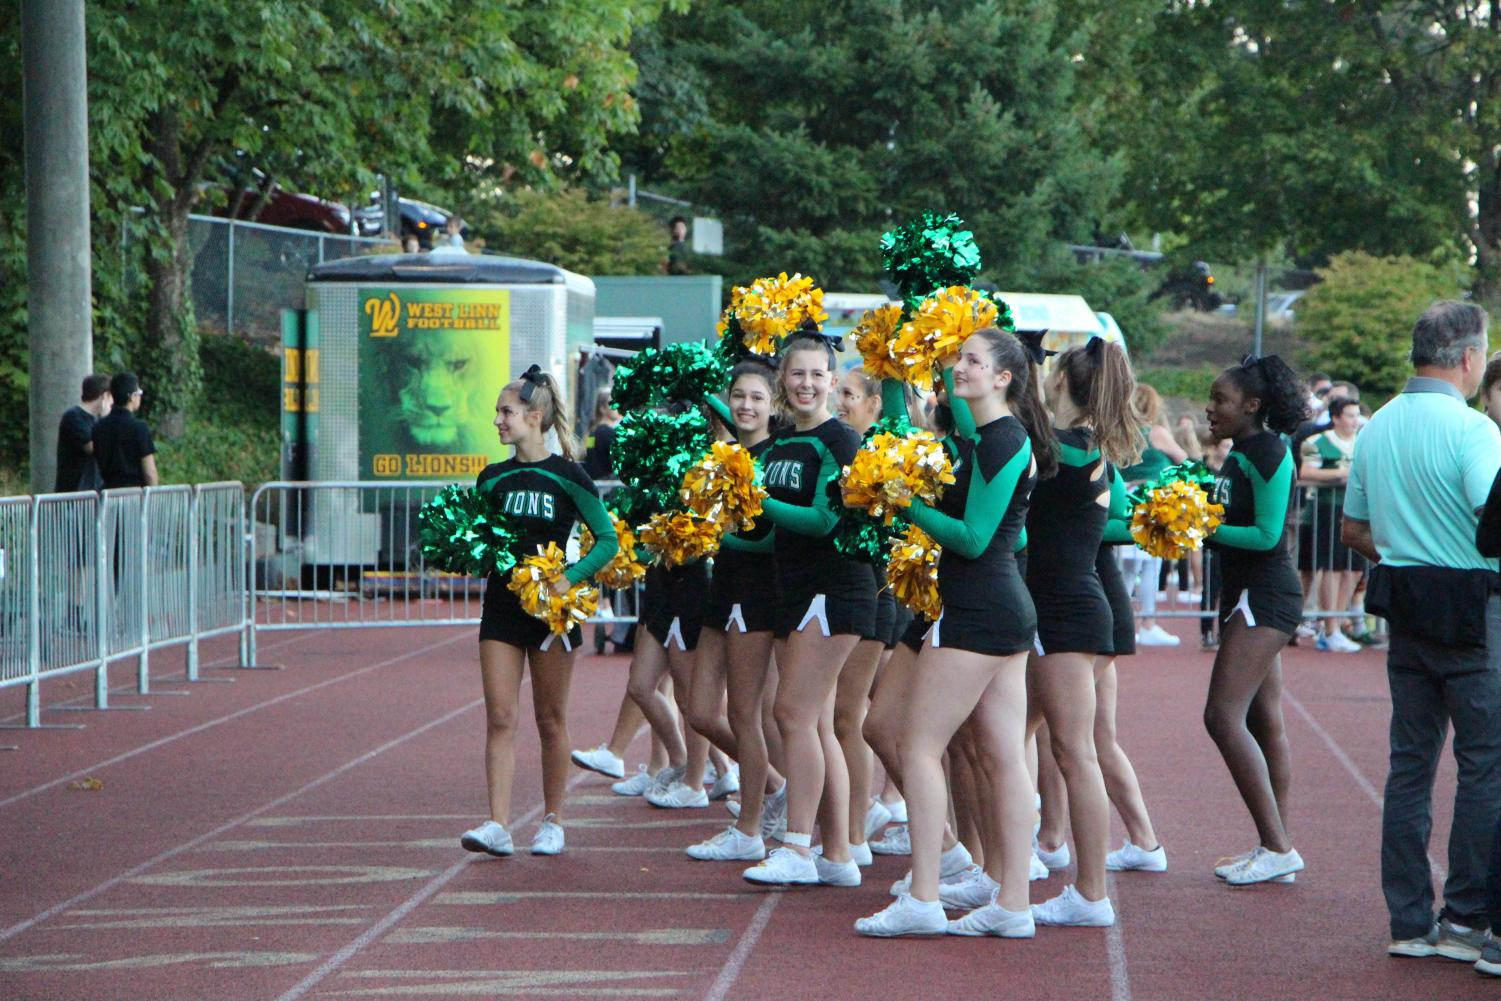 Cheerleaders+rally+the+student+section.